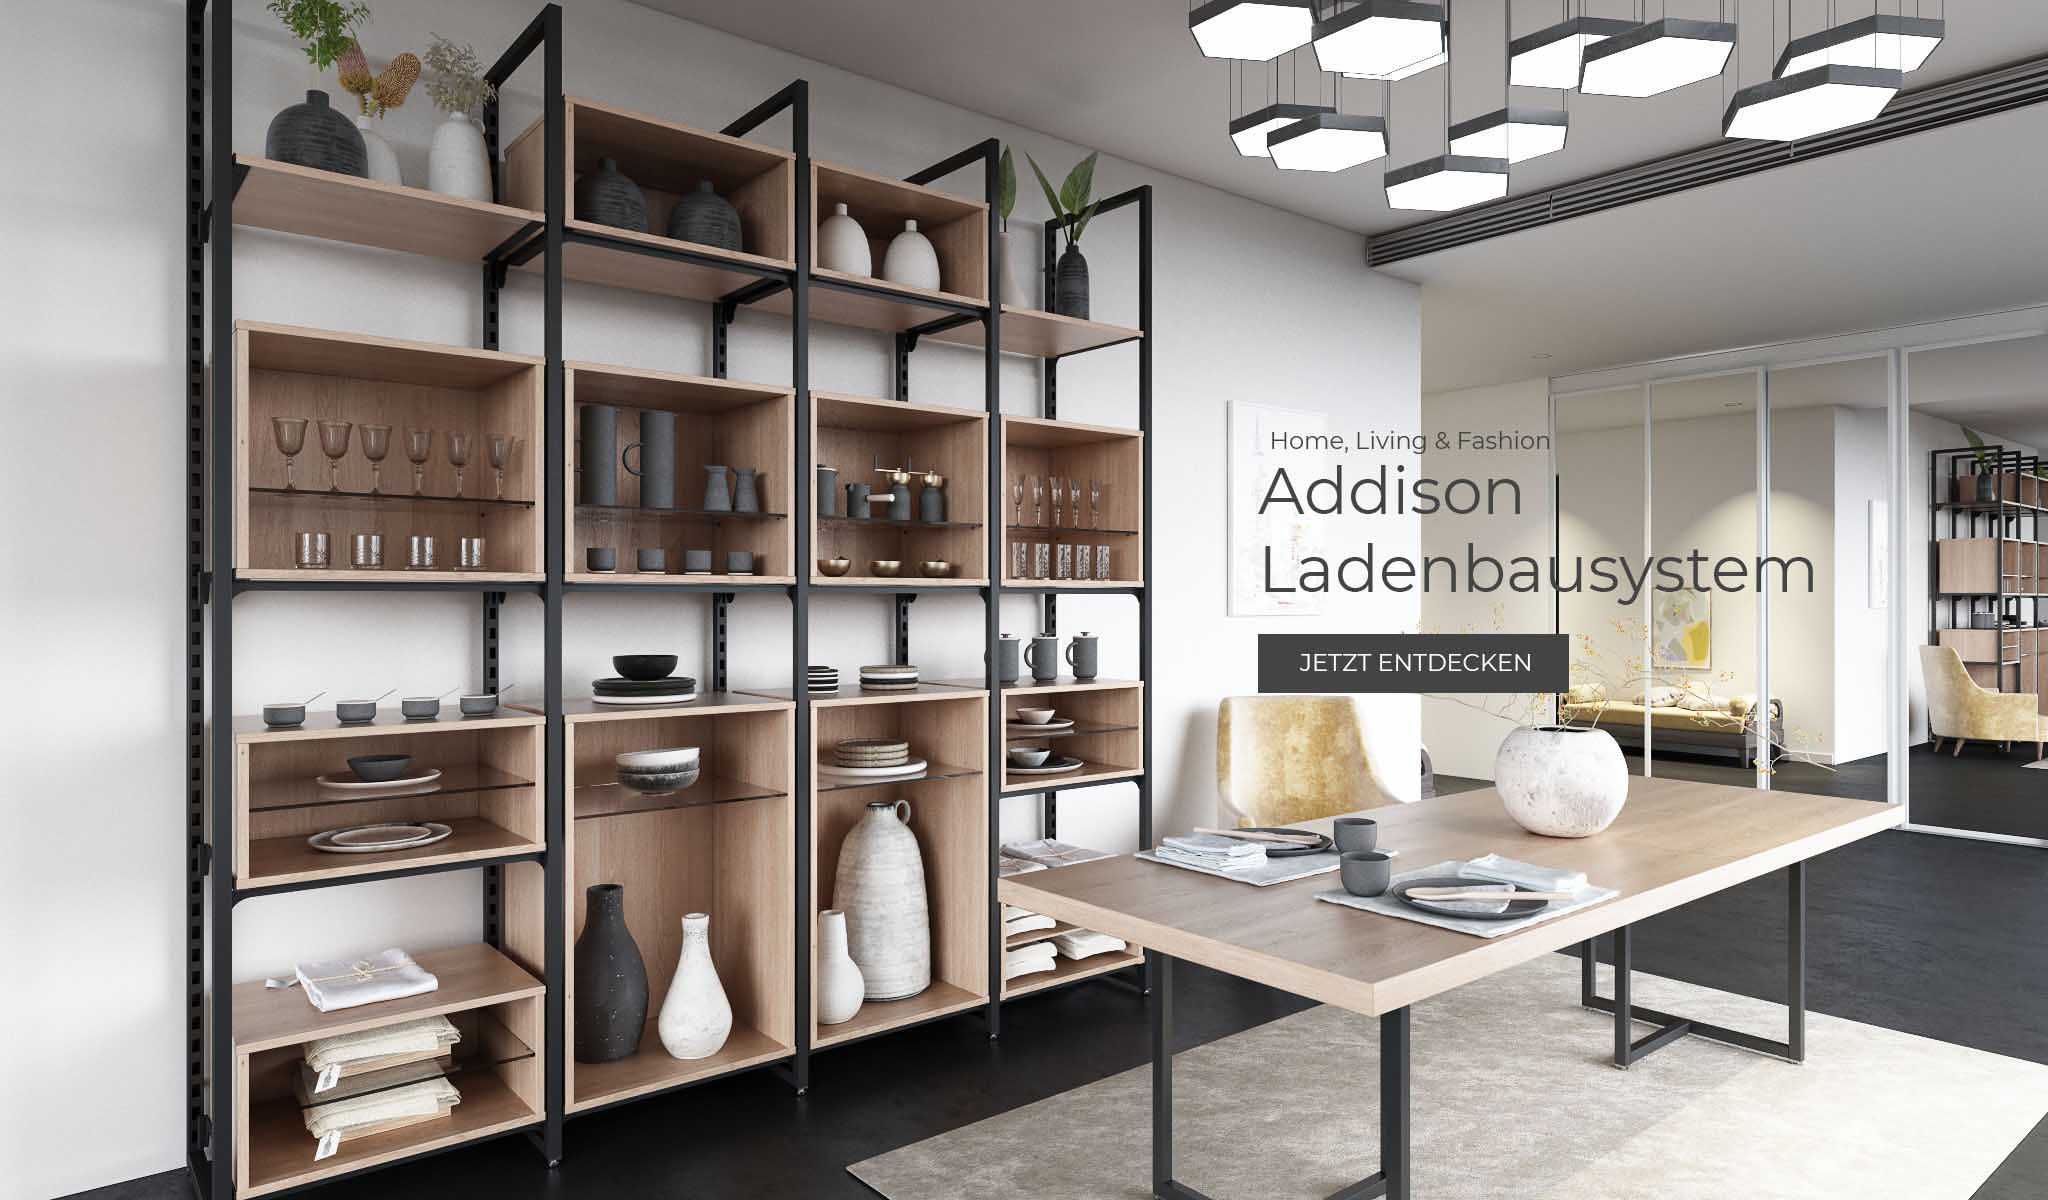 ladenbausysteme-home-living-fashion-addison-regalsystem